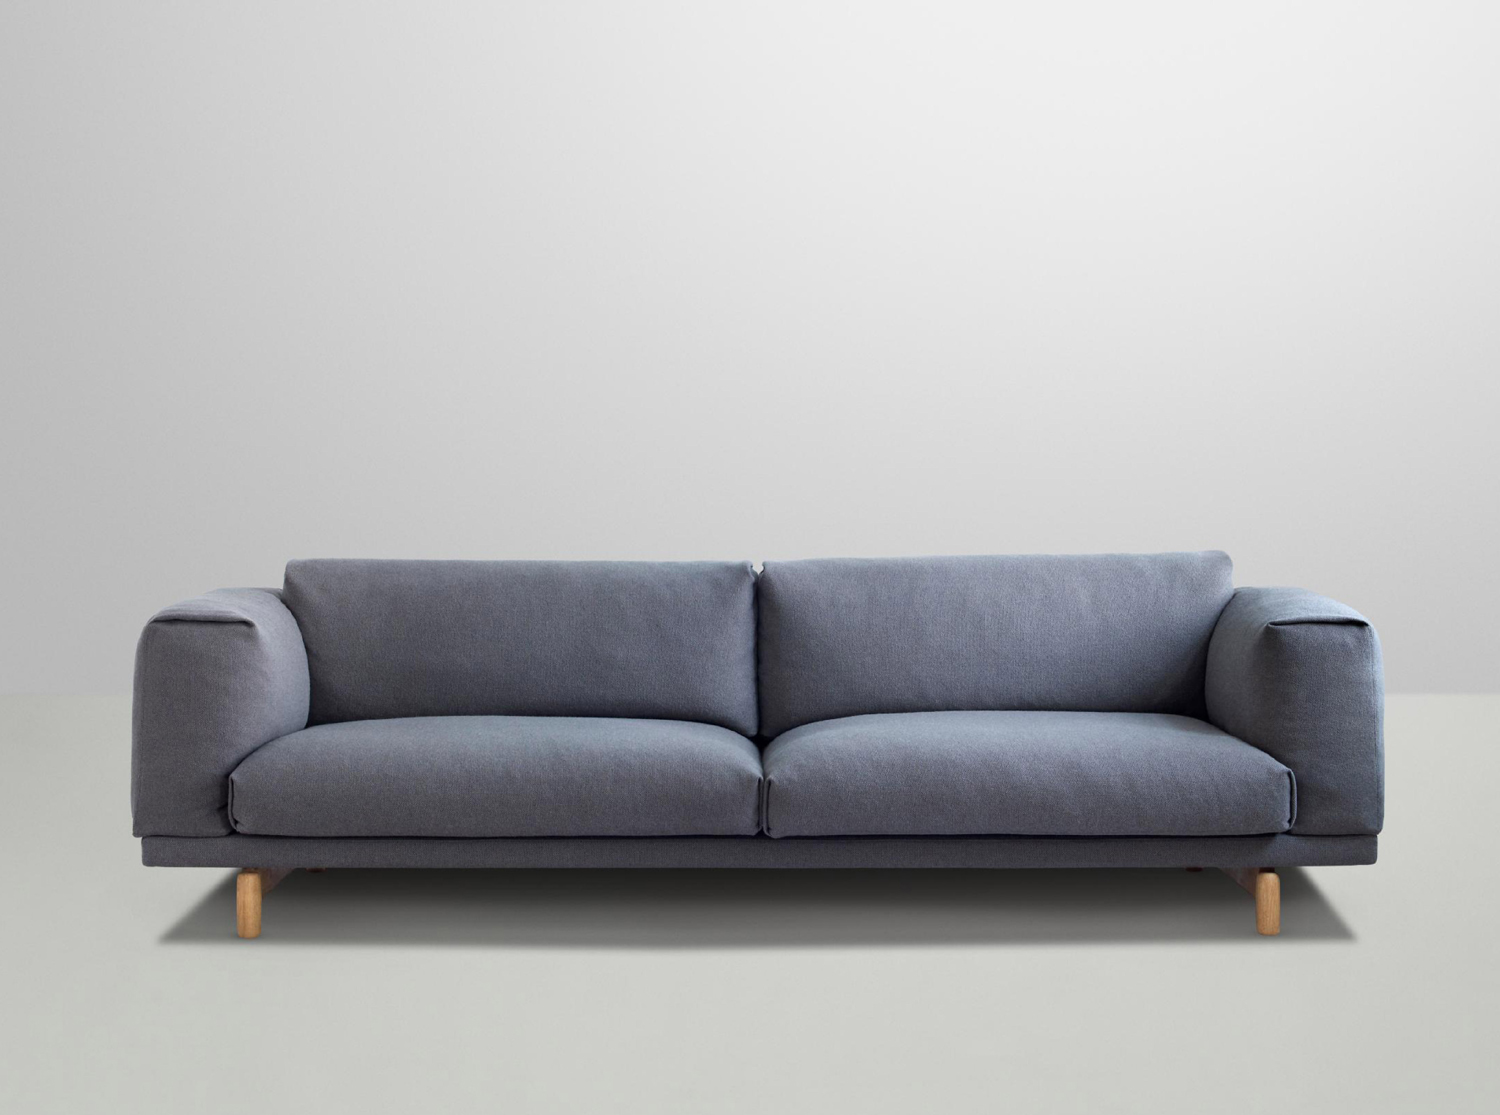 Designer Couch Muuto Rest Sofa By Anderssen And Voll